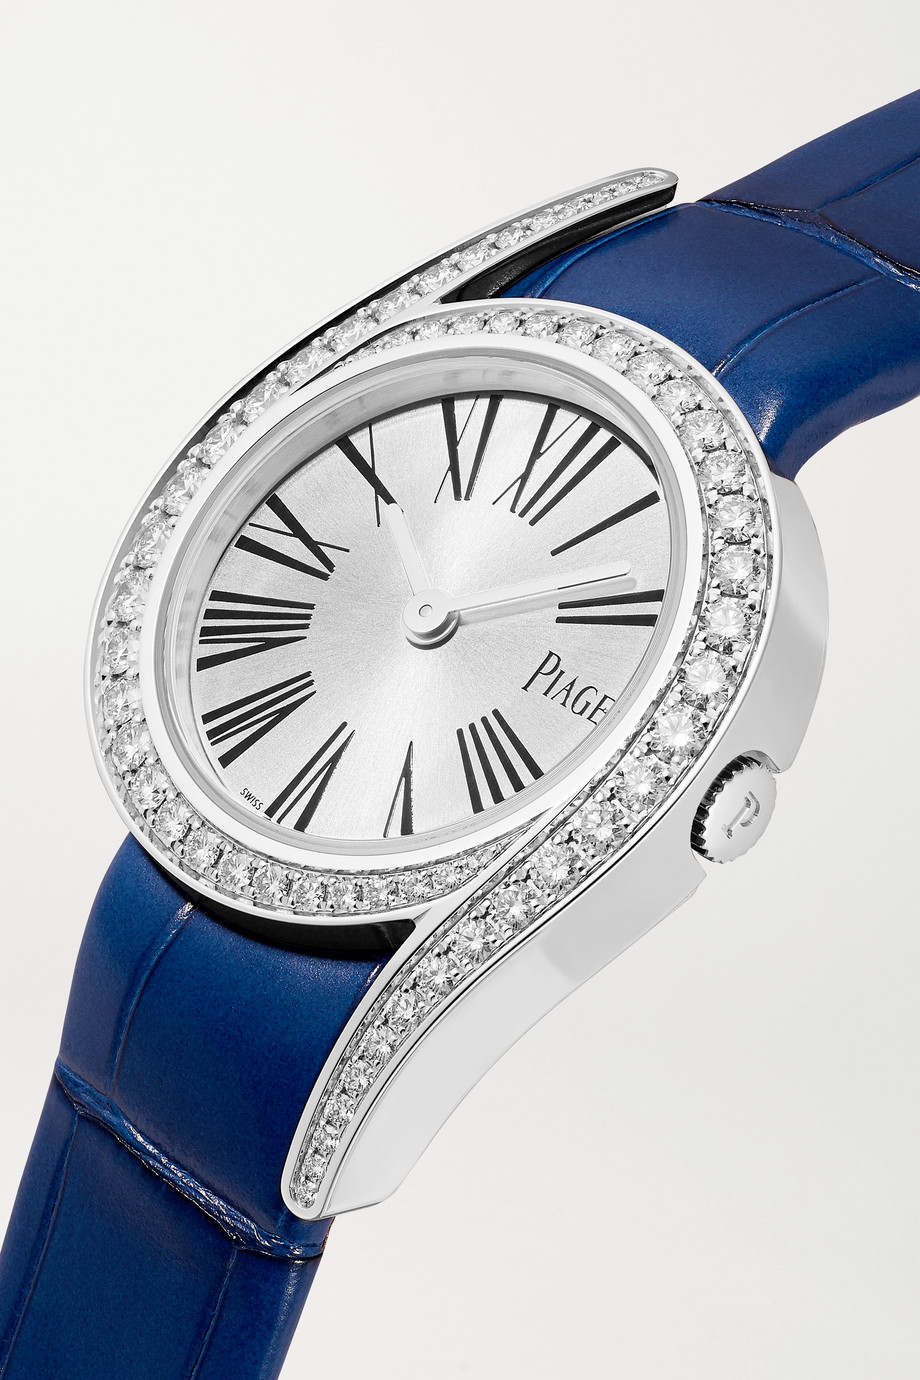 Piaget Limelight Gala 26mm 18-karat white gold, alligator and diamond watch